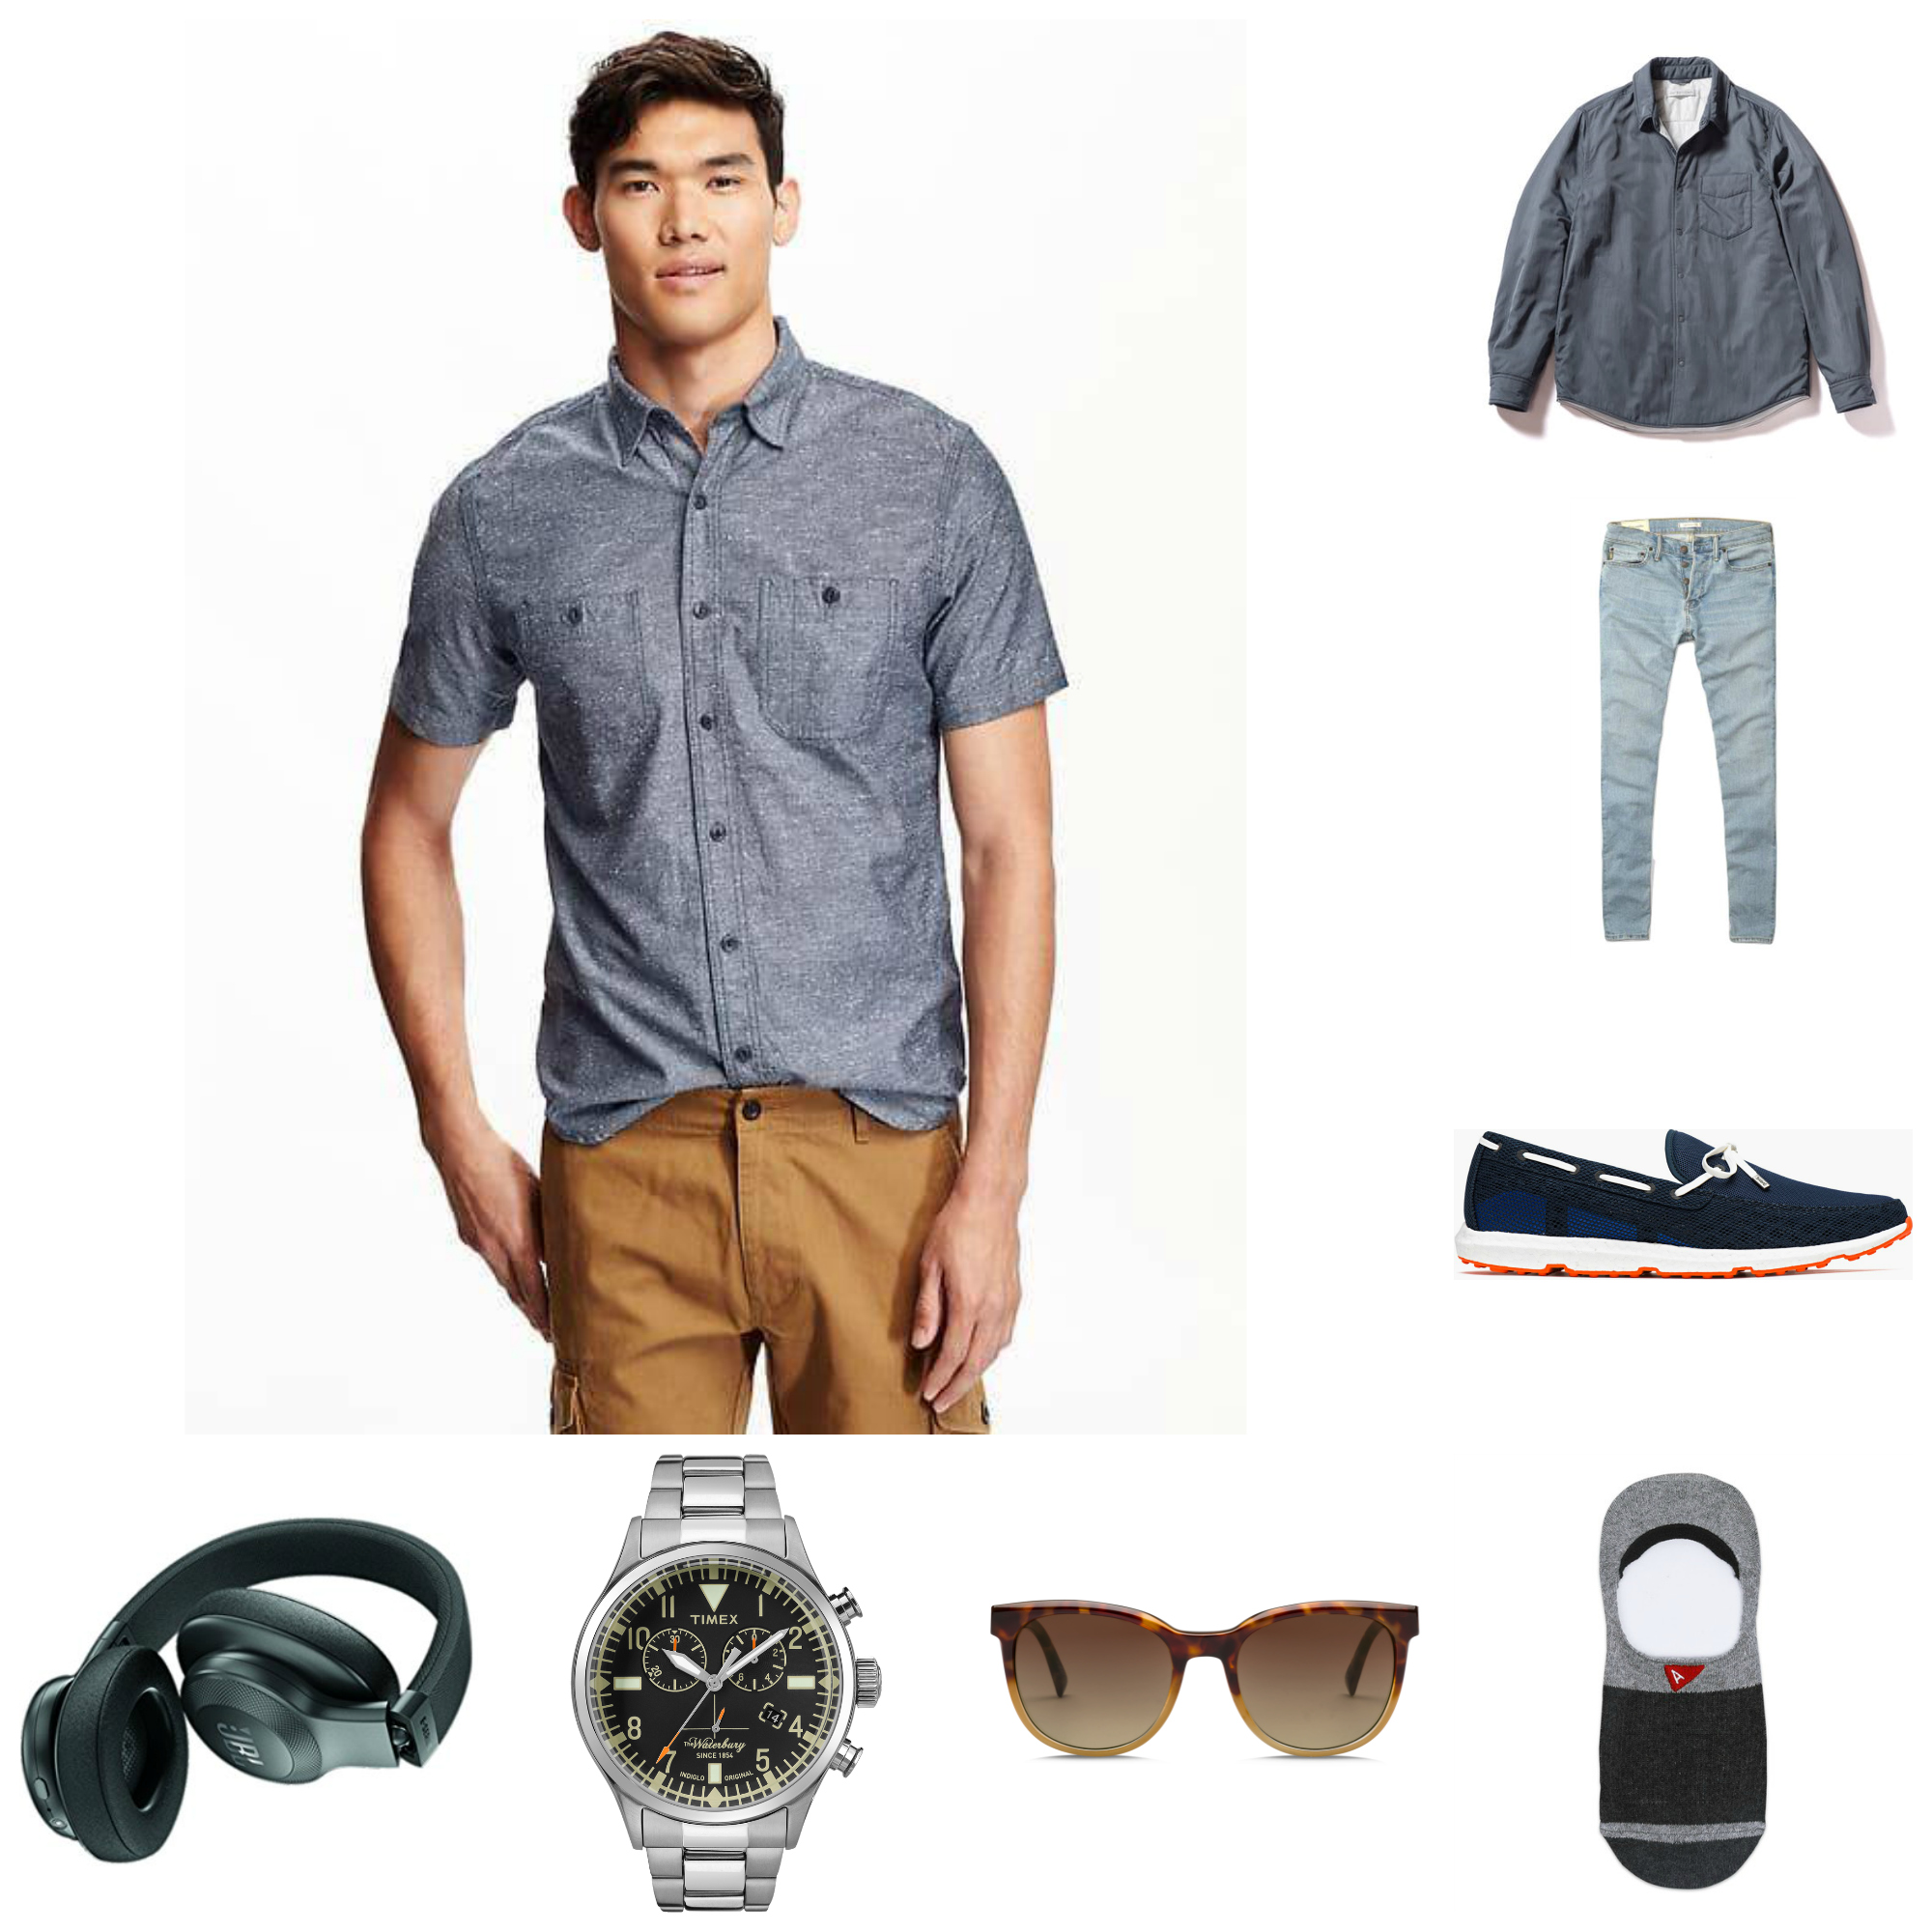 d7a16141d8  OOTD  How to Dress for a Music Festival This Summer